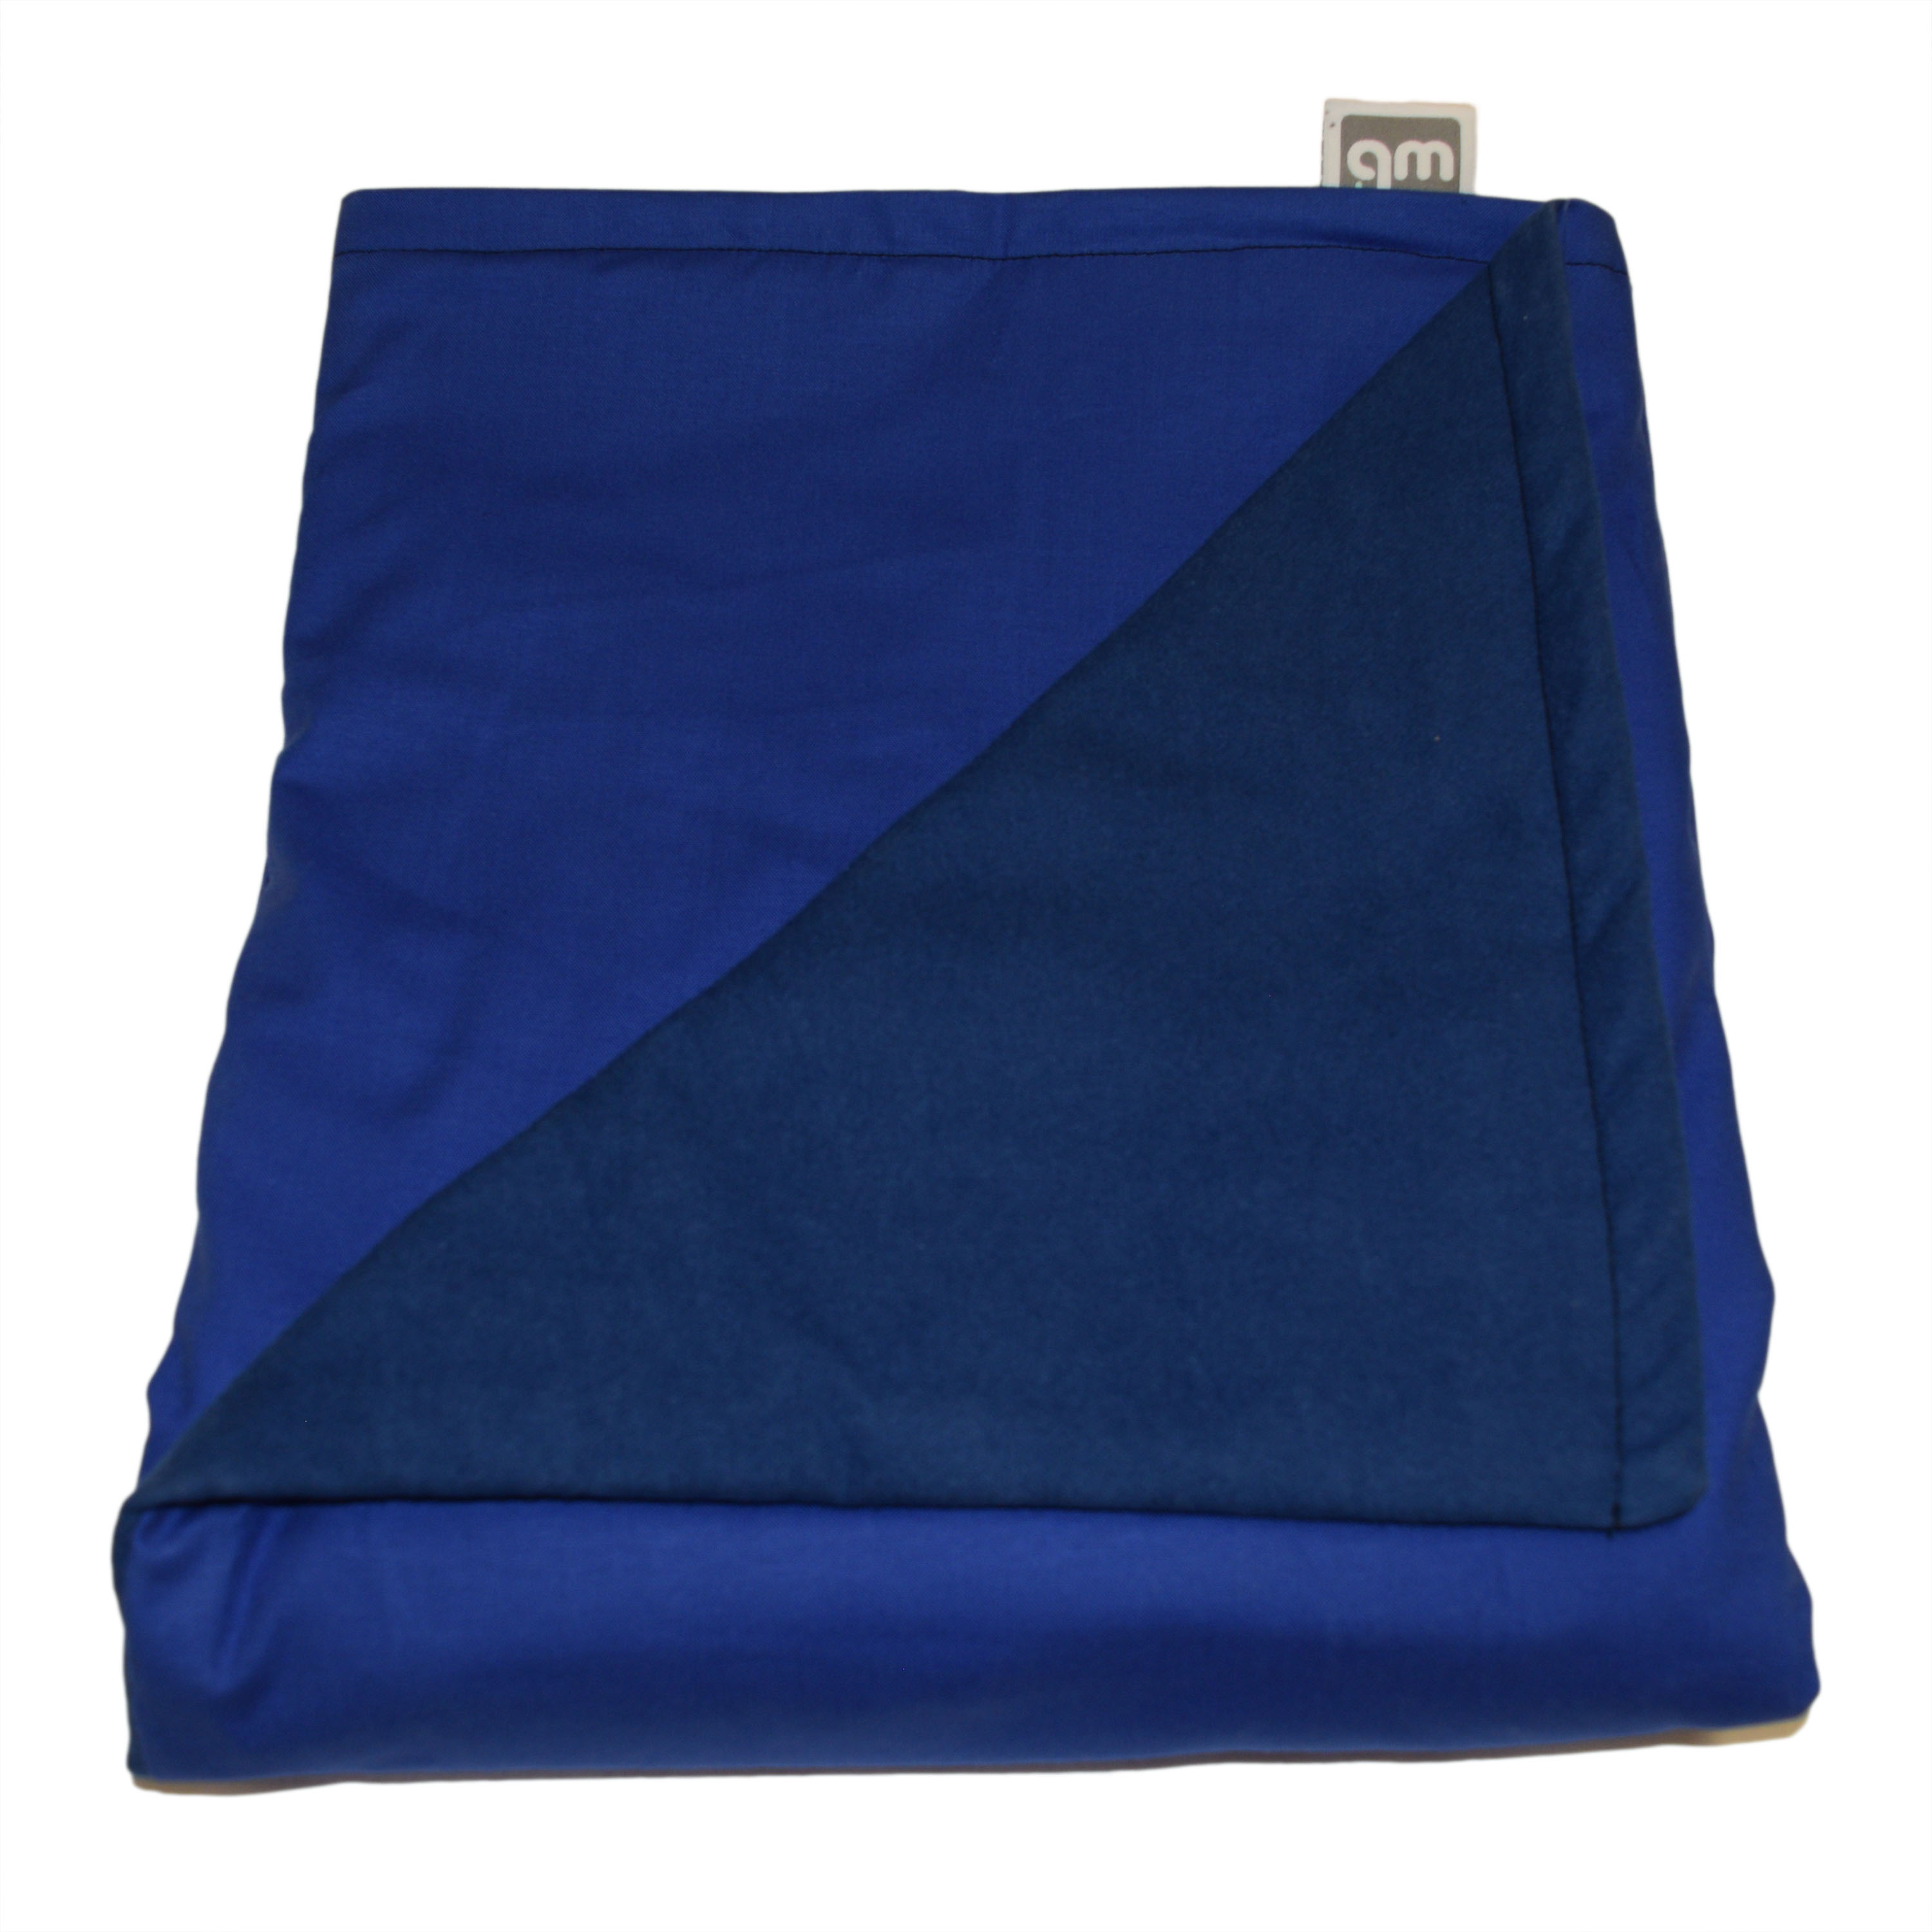 "WEIGHTED BLANKETS PLUS LLC - ADULT EXTRA LARGE WEIGHTED BLANKET - BLUE - COTTON/FLANNEL (80""L x 58""W) 21lb LOW PRESSURE."